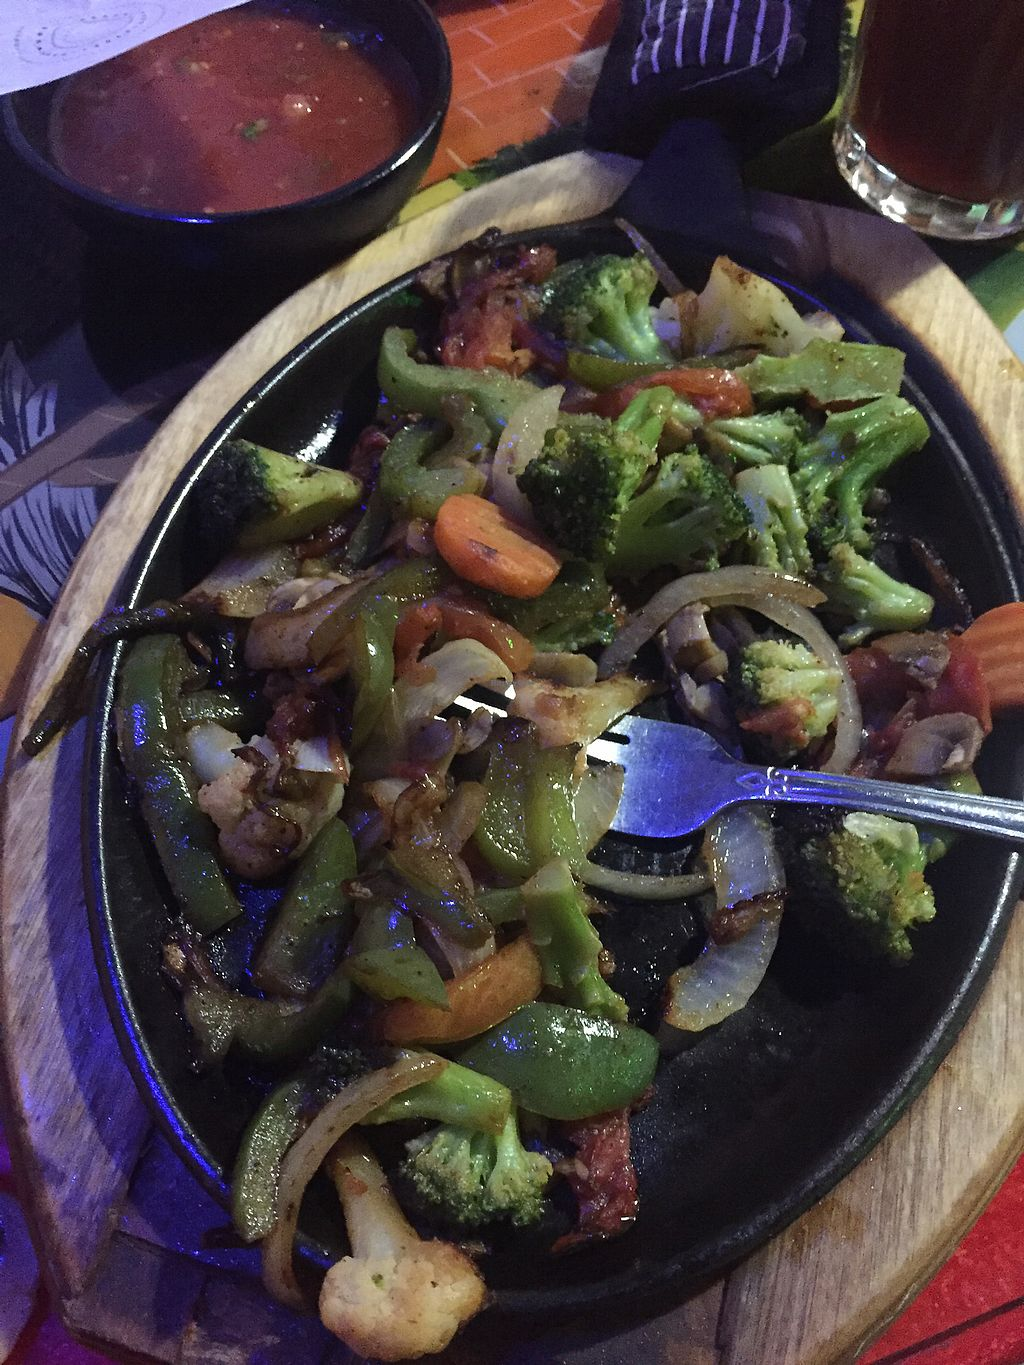 """Photo of Los Aztecas  by <a href=""""/members/profile/Browncoat3000"""">Browncoat3000</a> <br/>Veggie Fajitas  <br/> November 18, 2017  - <a href='/contact/abuse/image/105396/326715'>Report</a>"""